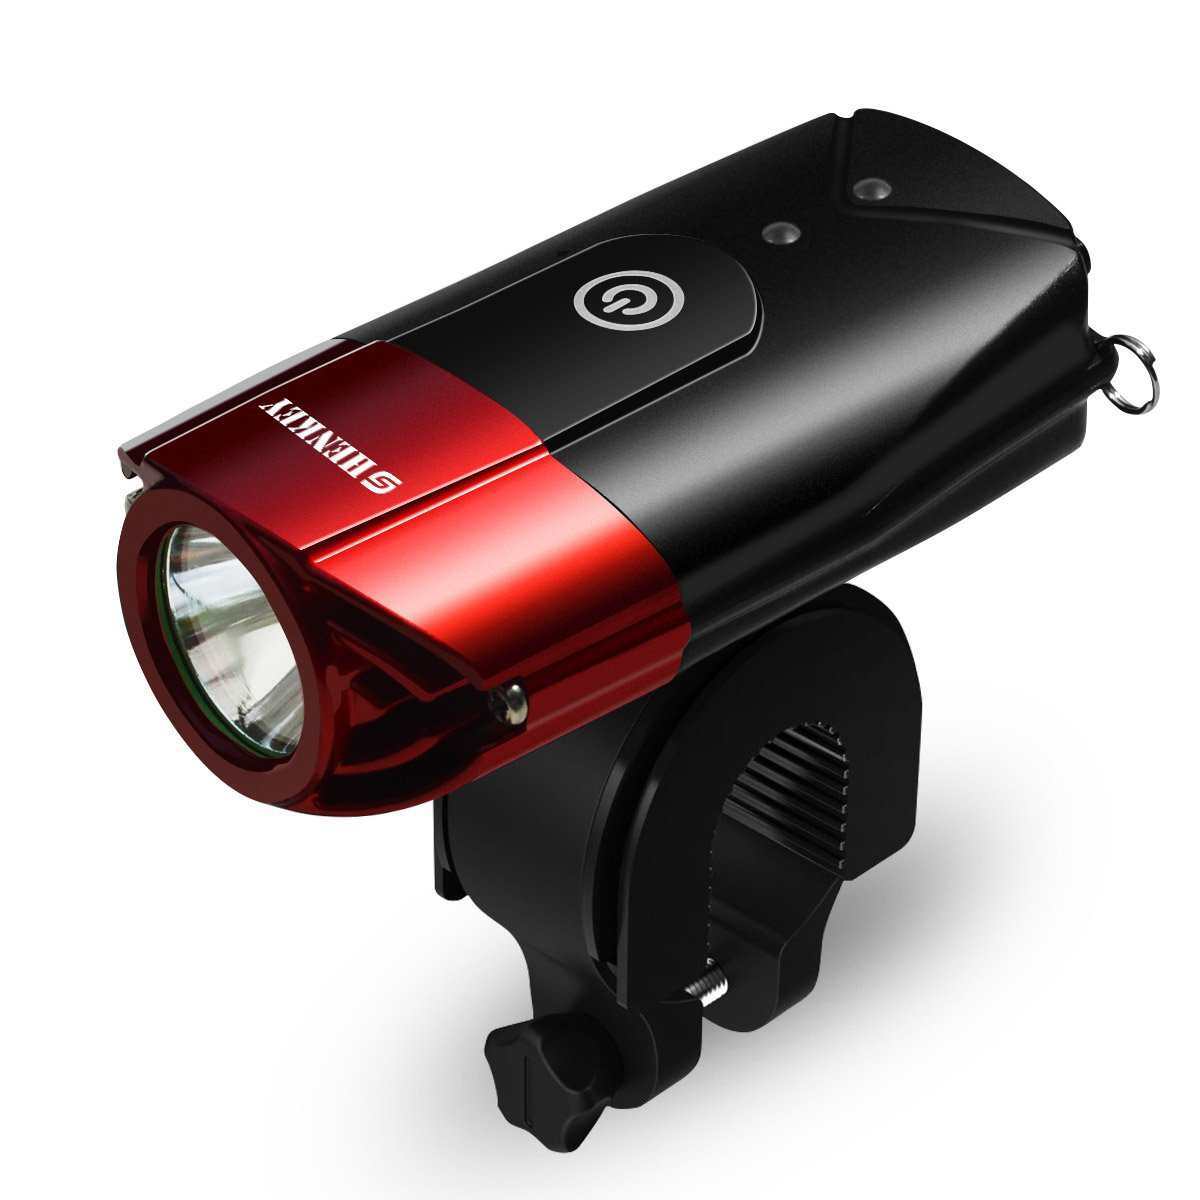 09c955f4d72 Details about shenkey Bike Lights USB Rechargeable LED Bicycle Headlight  (2000mAh 1000 Lume.